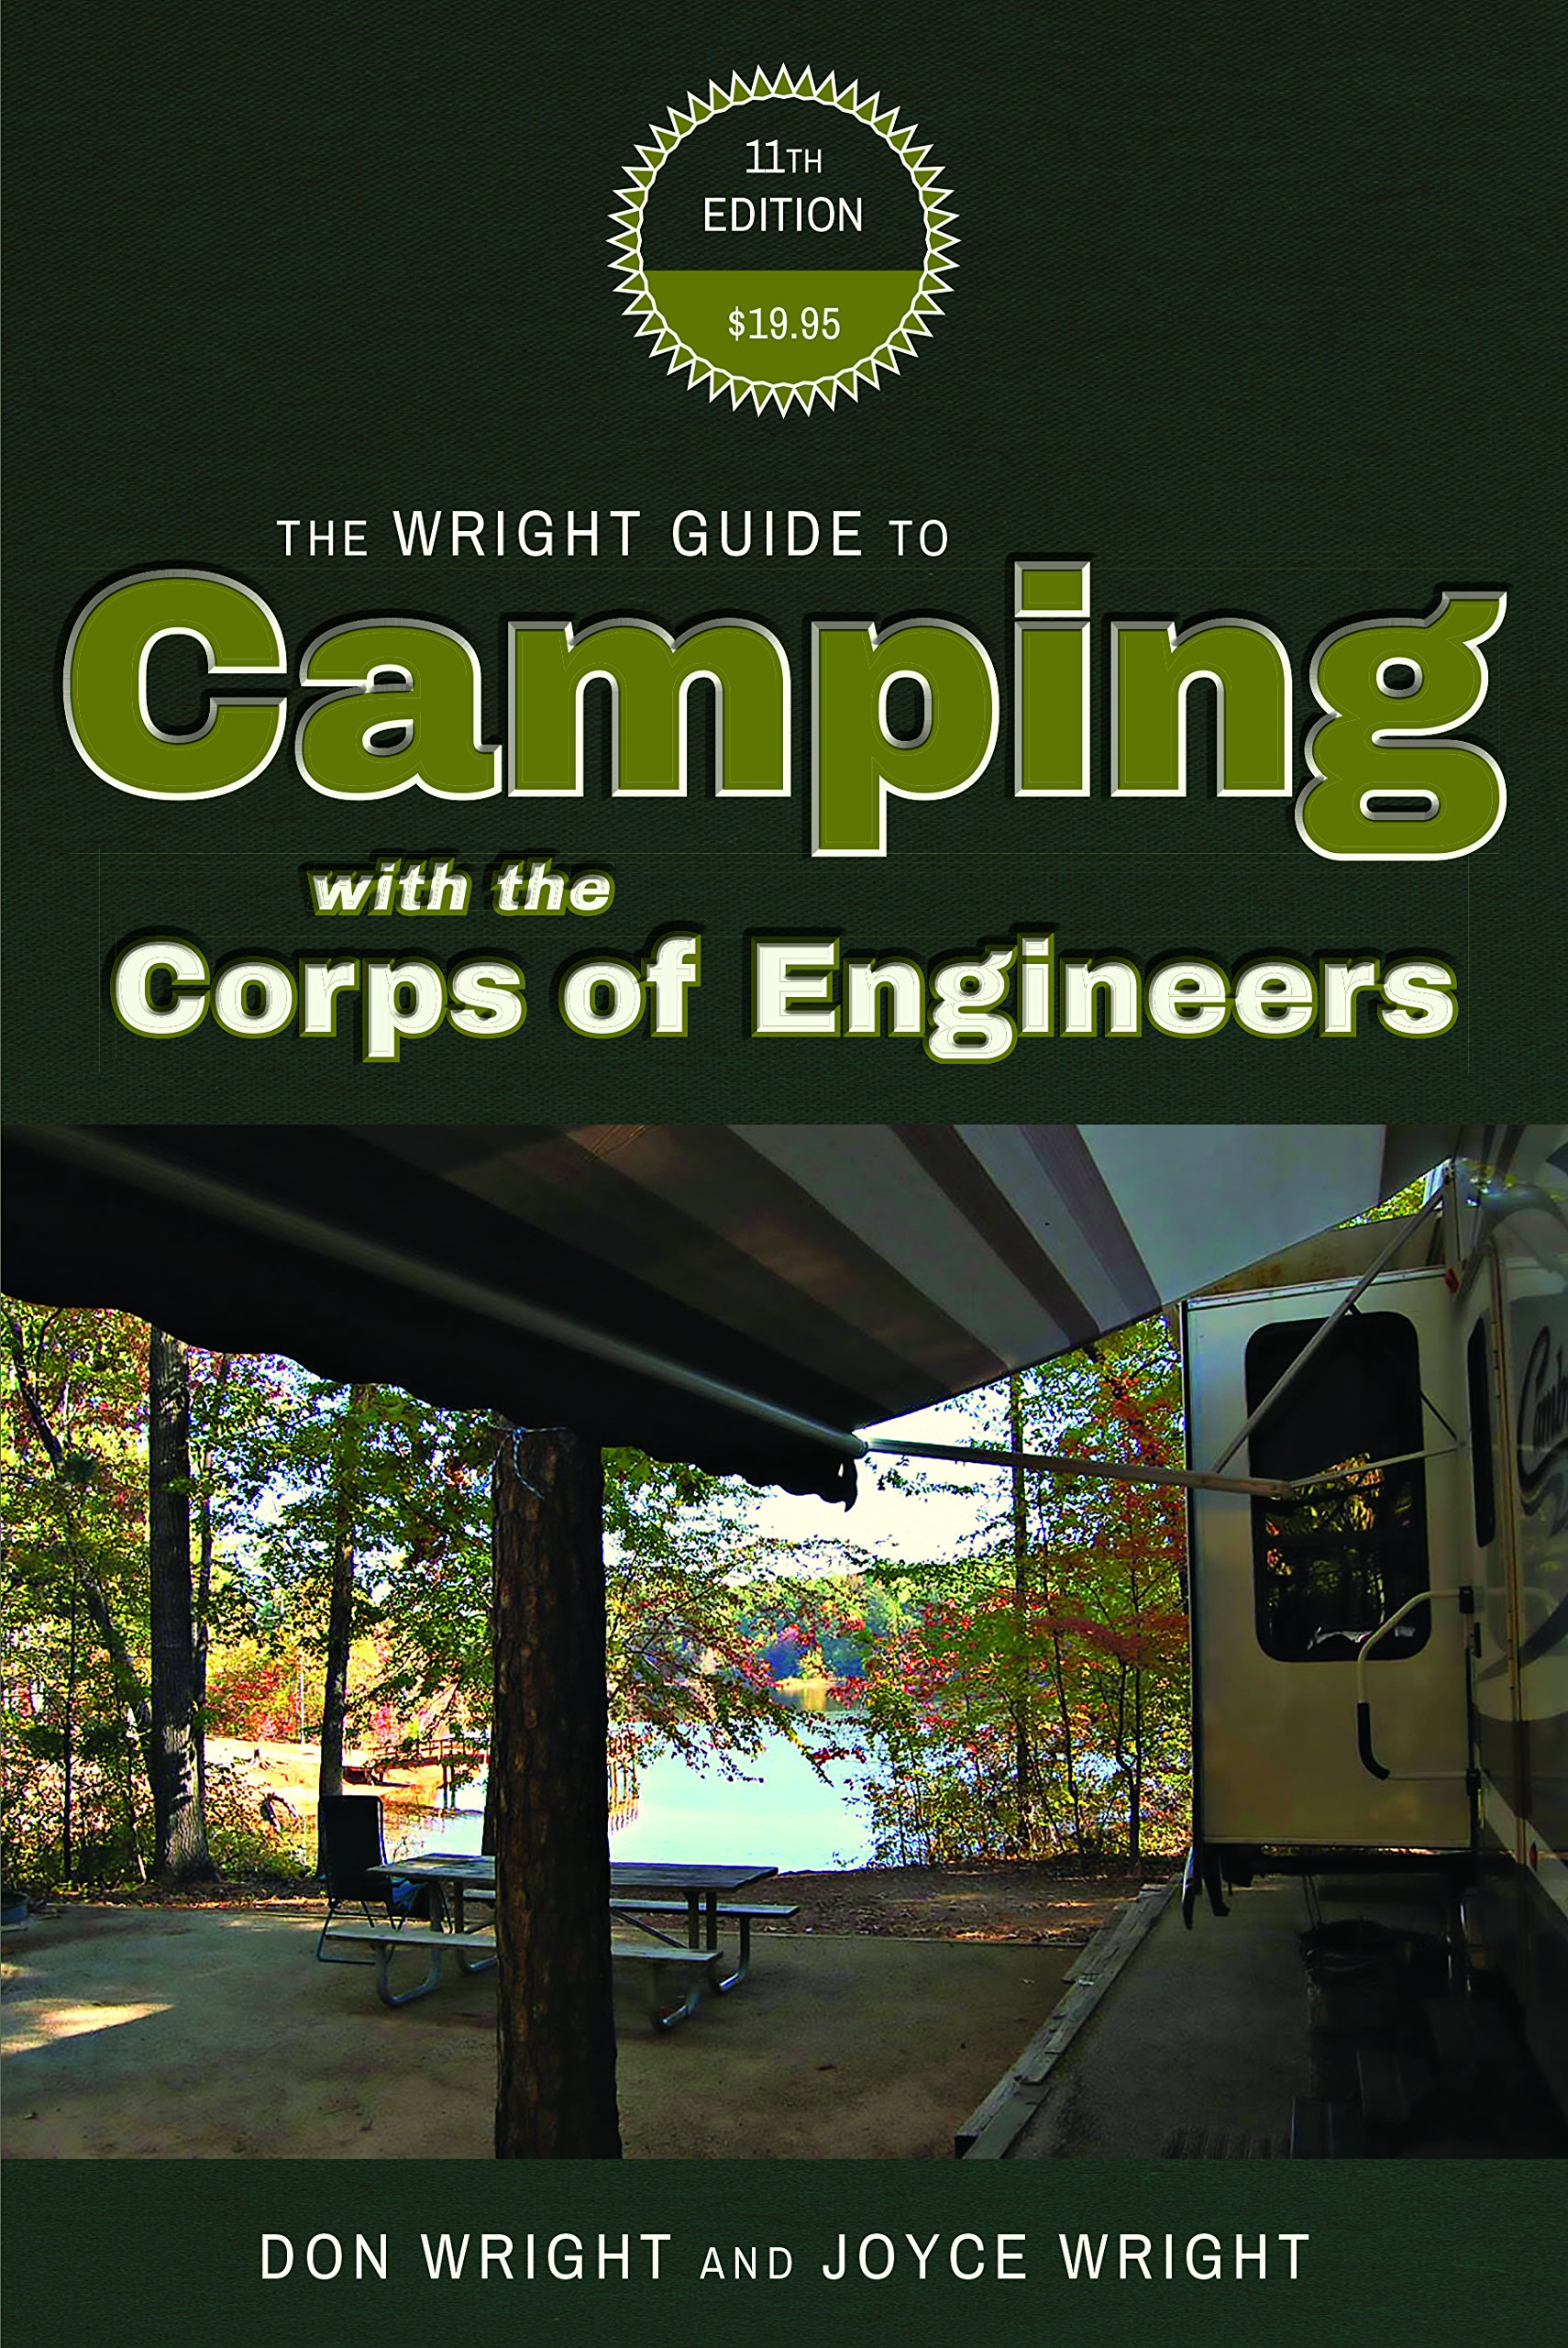 The Wright Guide to Camping with the Corps of Engineers: Don Wright, Joyce  Wright: 9780937877609: Amazon.com: Books